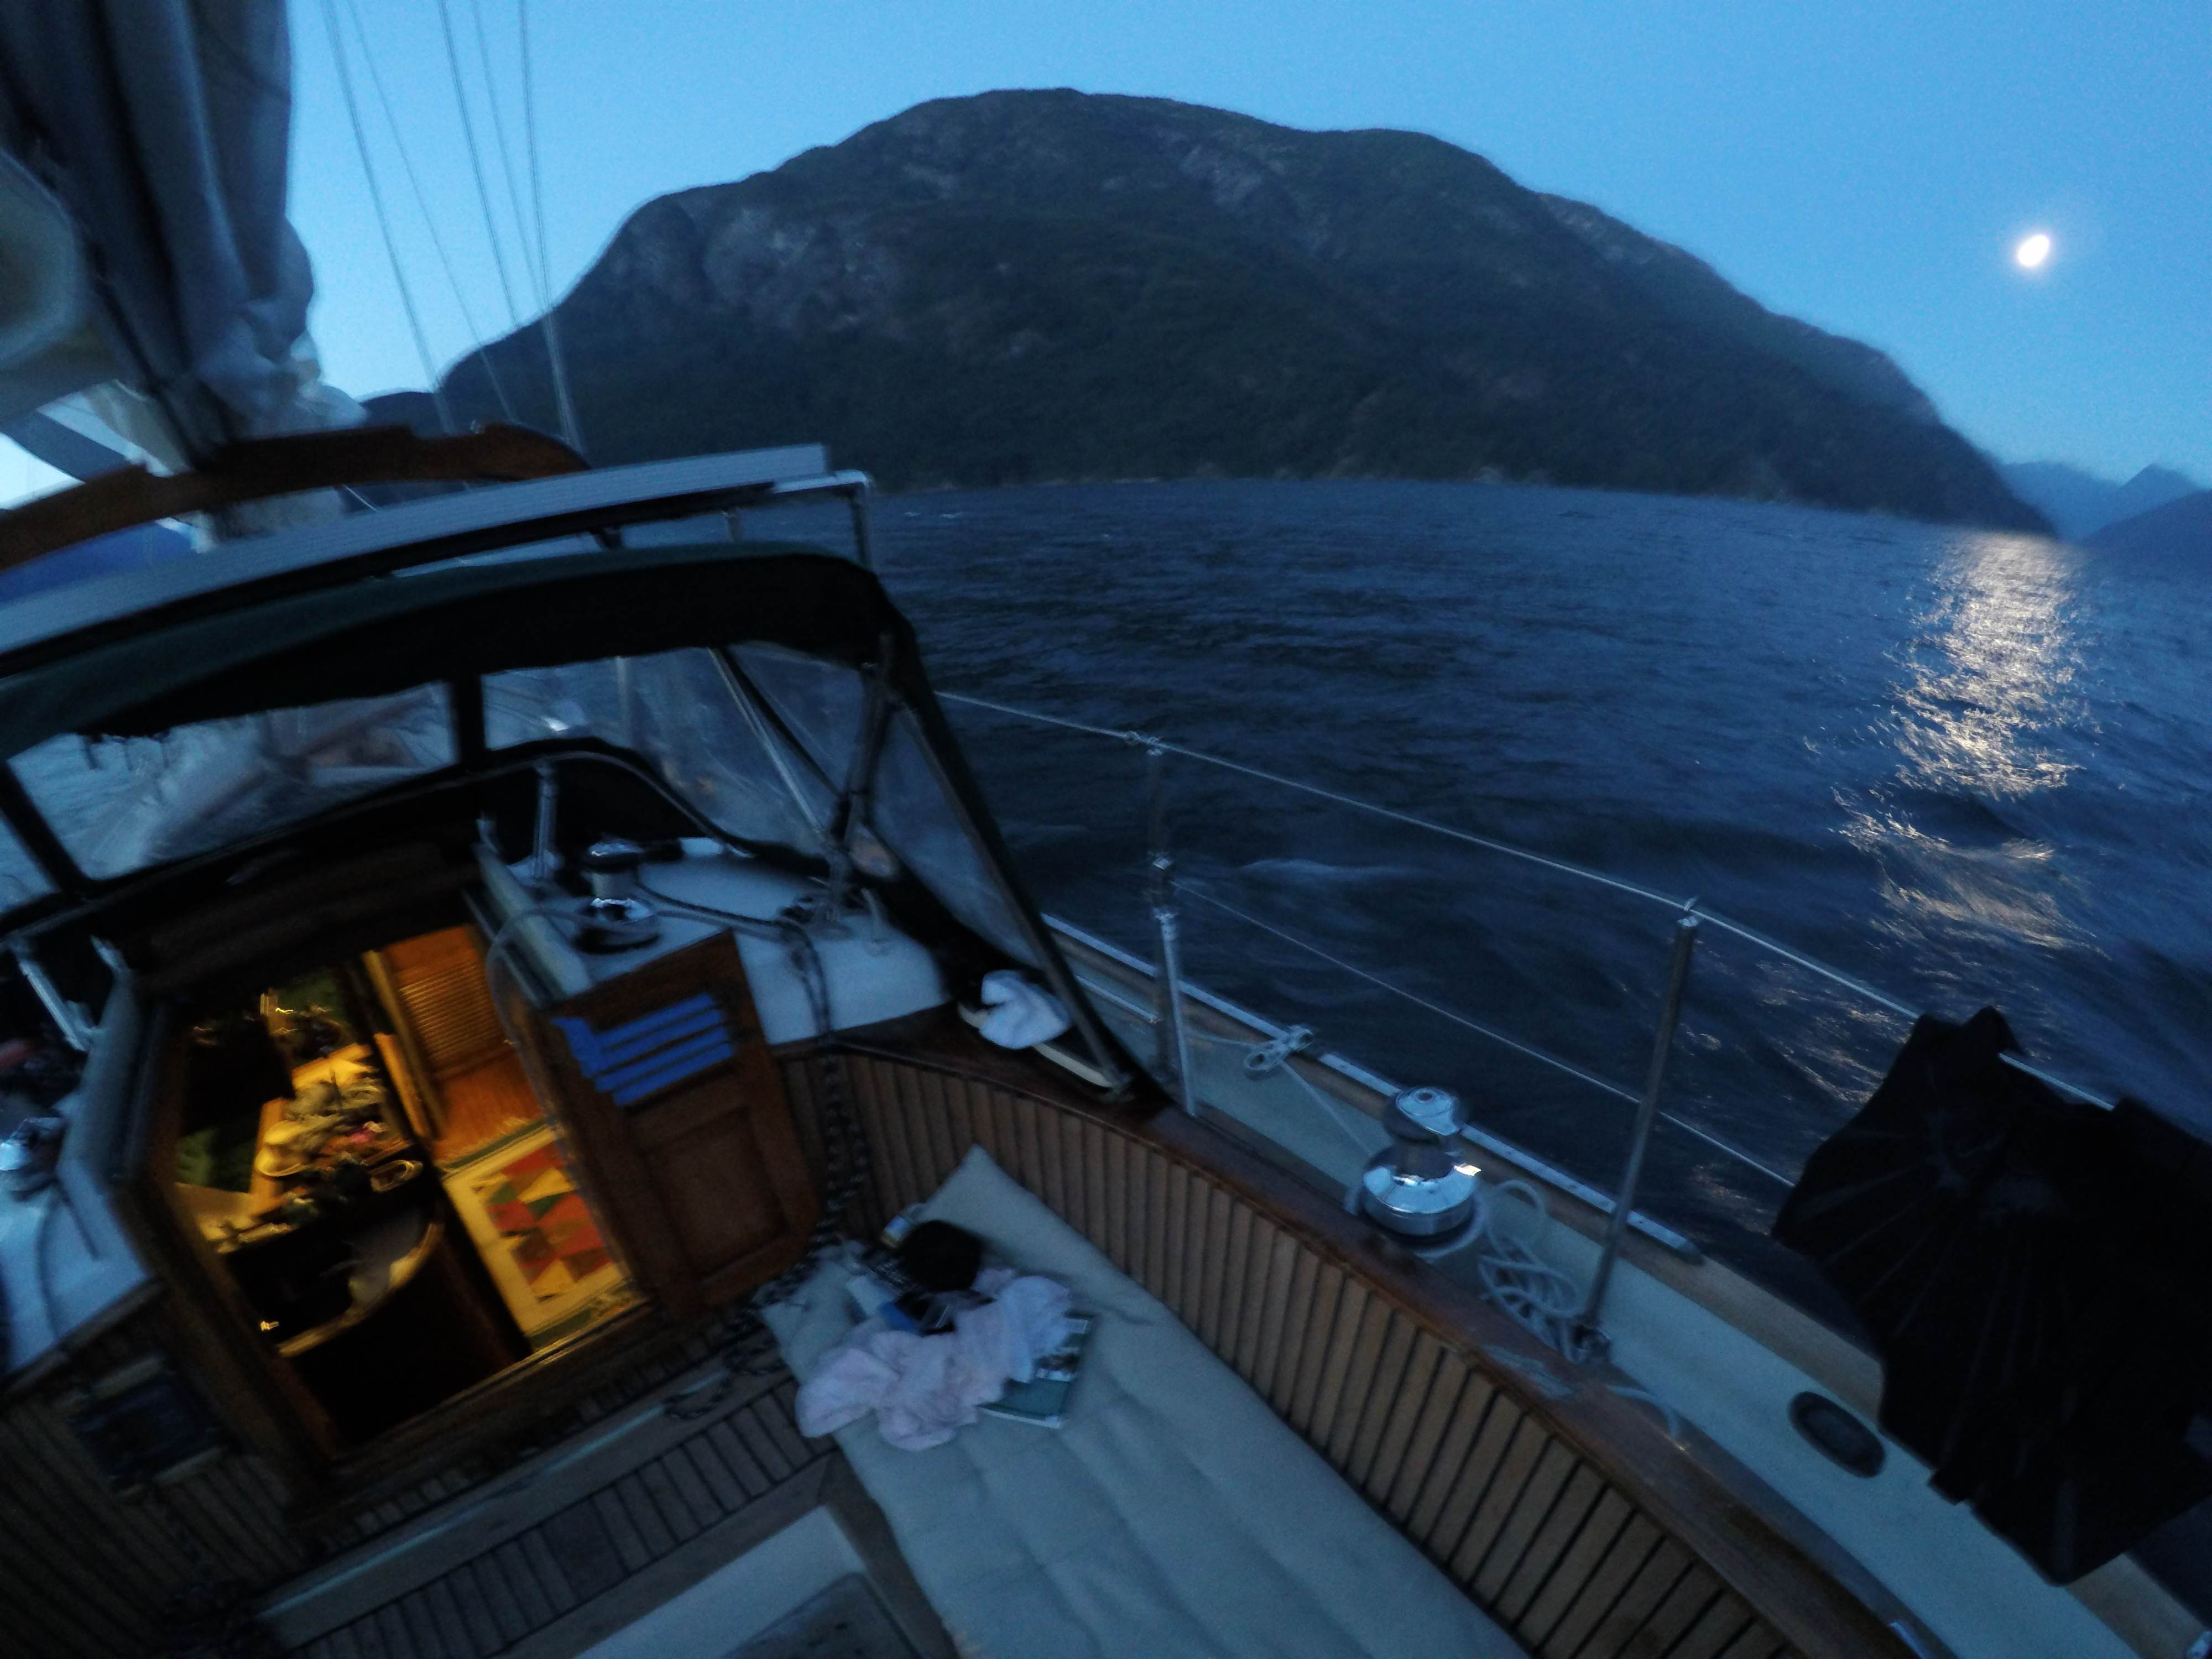 The moon is up and we're still sailing. An experience to remember. Alone in paradise.